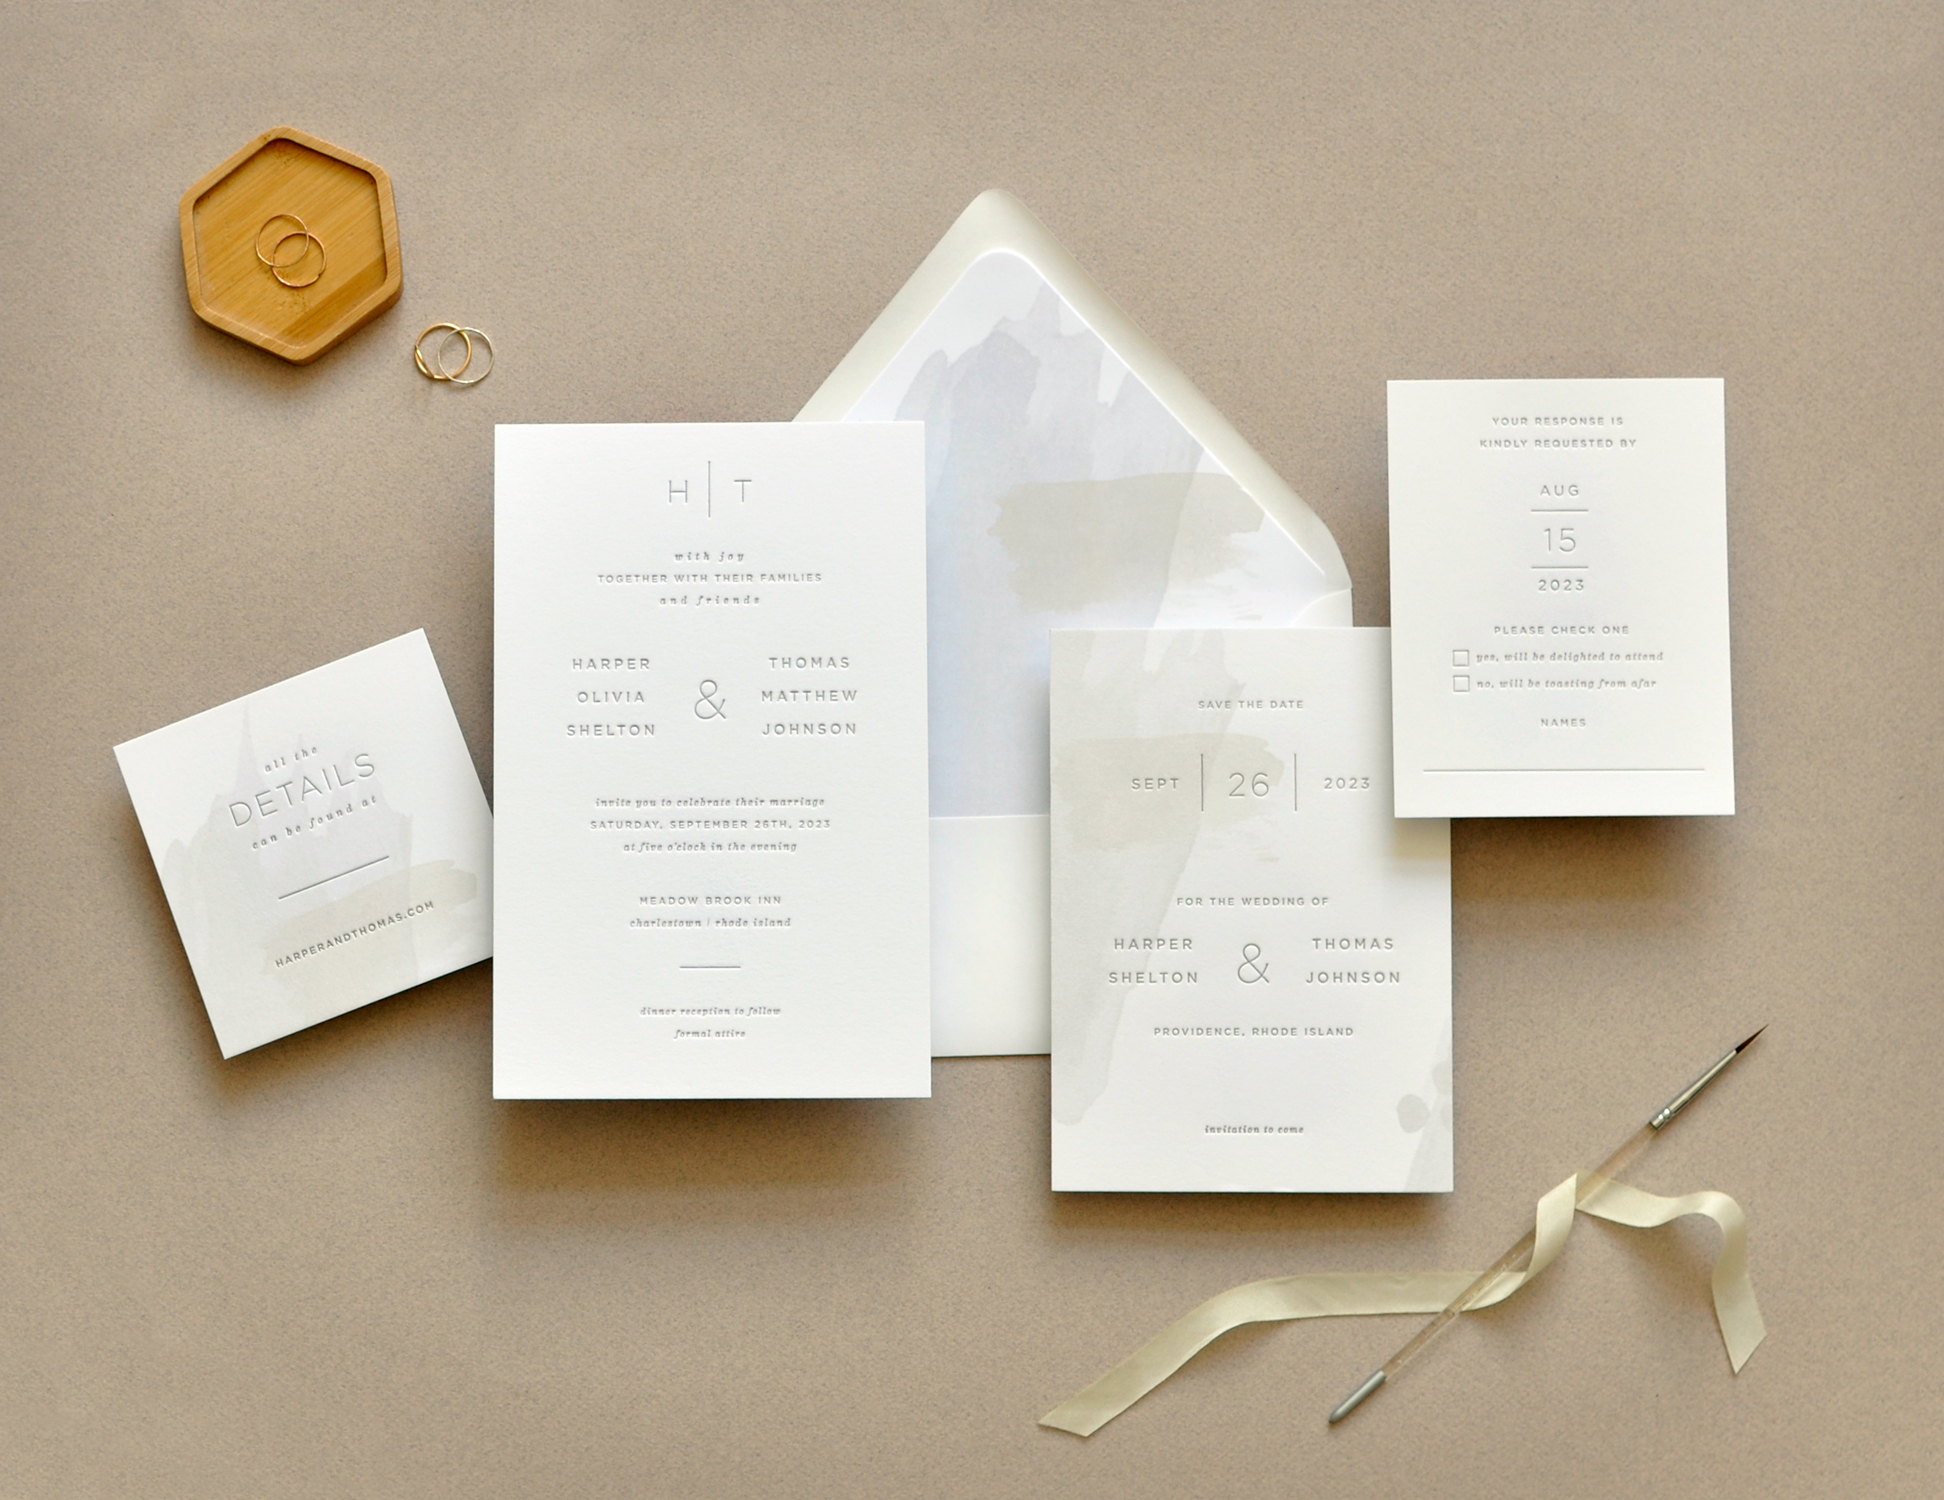 Contemporary wedding invitation in one color letterpress features watercolor brush stroke accents on the insert card and envelope liner. Staccato serves clients in Virginia, Maryland, Washington DC, and nationwide.